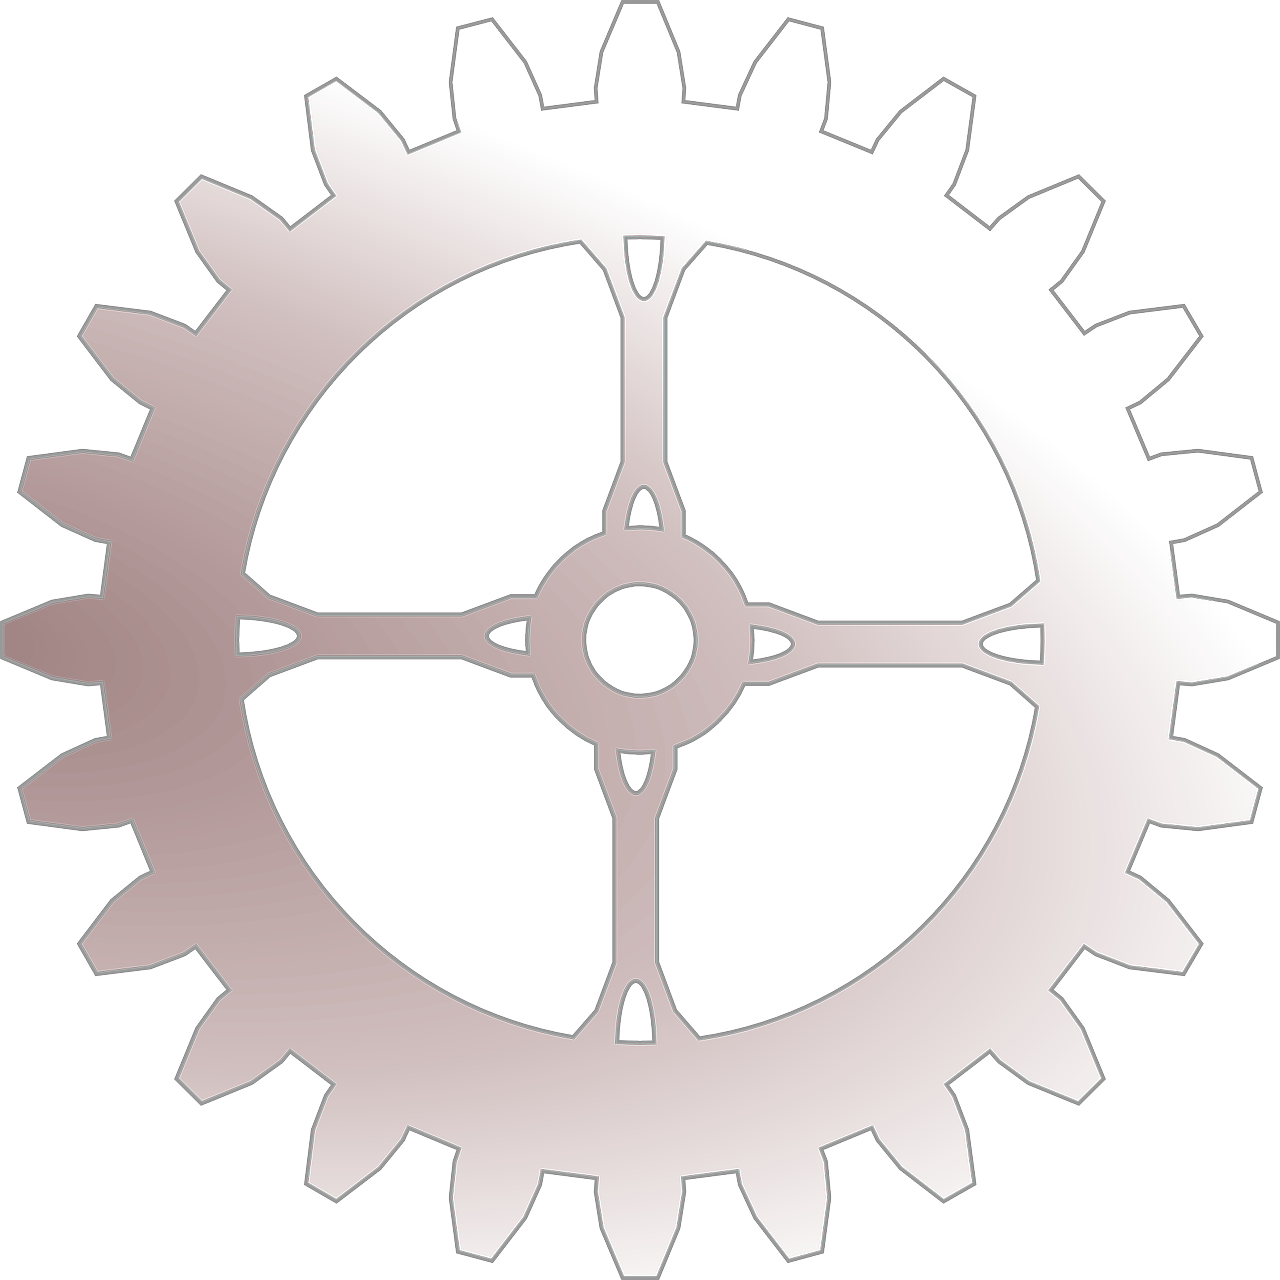 Gear clipart manufacturing. Inventions and manufacturers tools